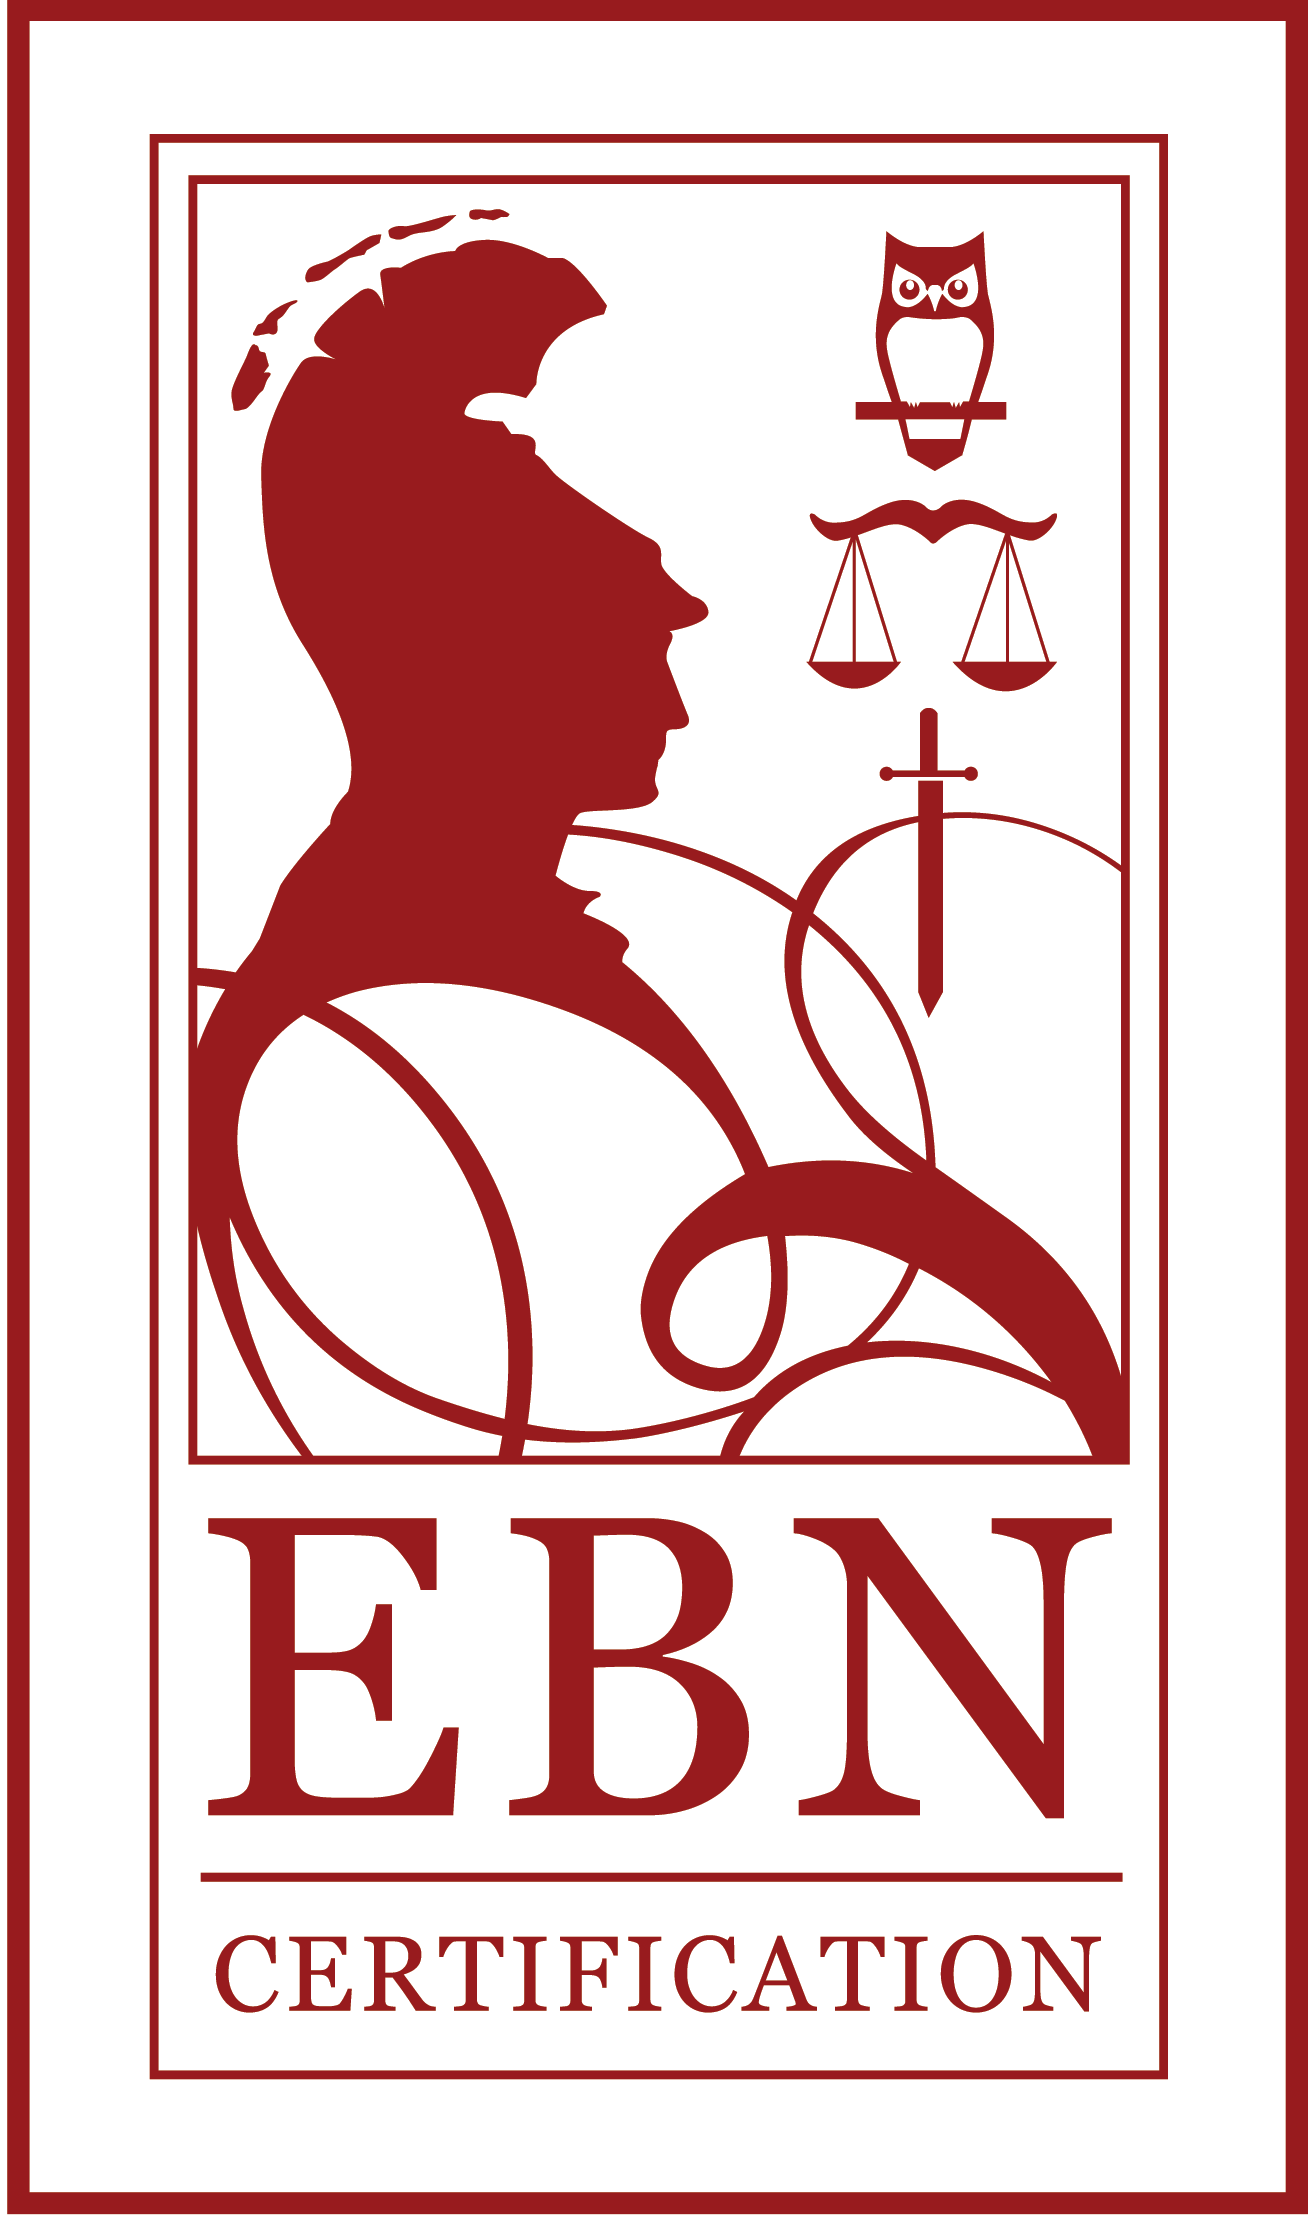 EBN Certification B.V.